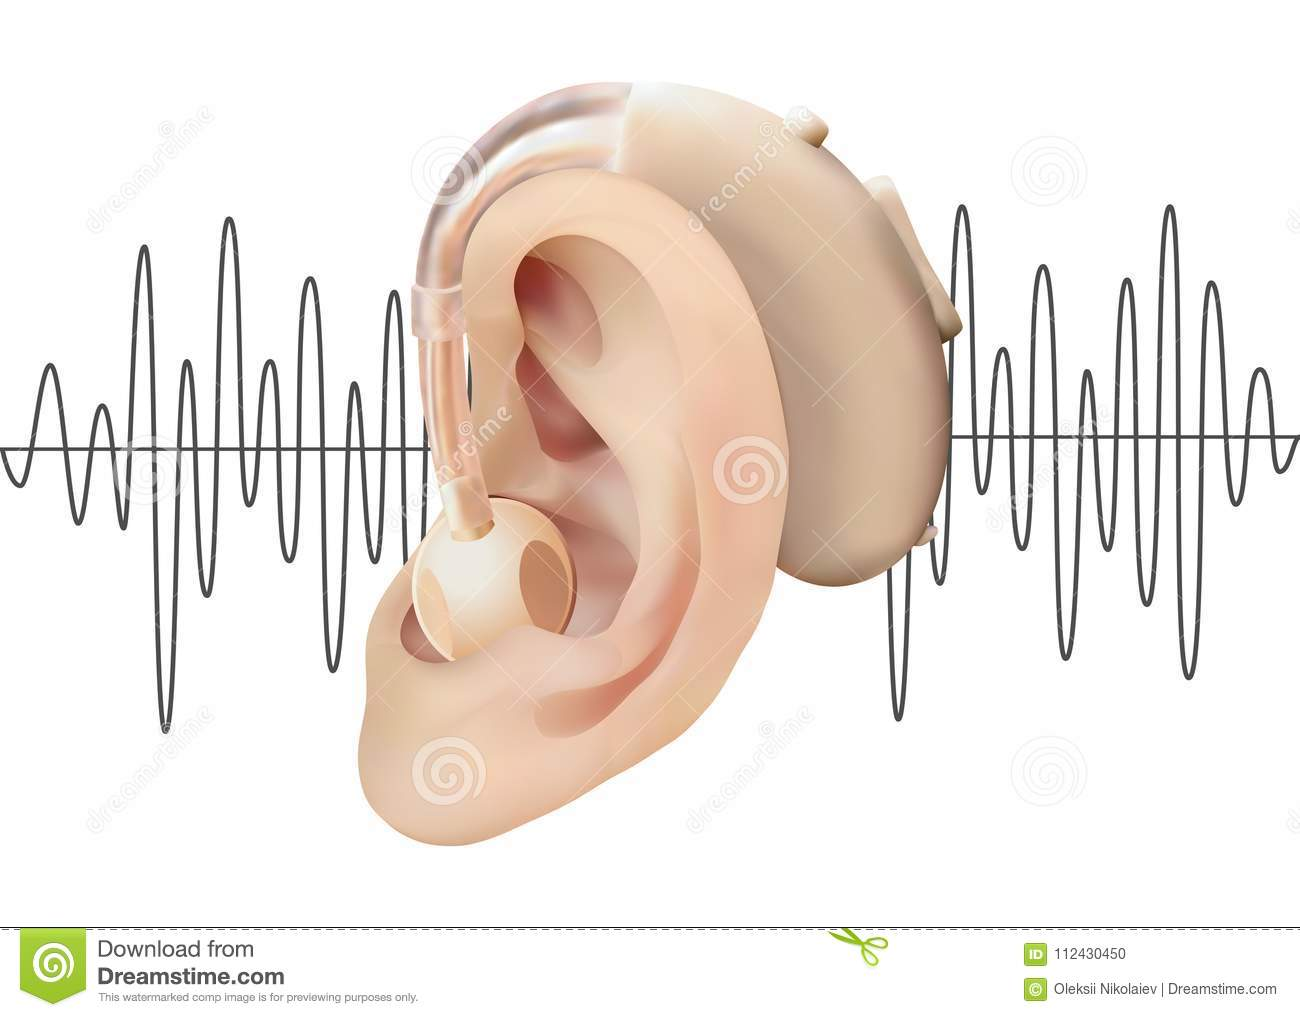 Digital Hearing Aid Behind The Ear On The Background Of Sound Wave Diagram Treatment And